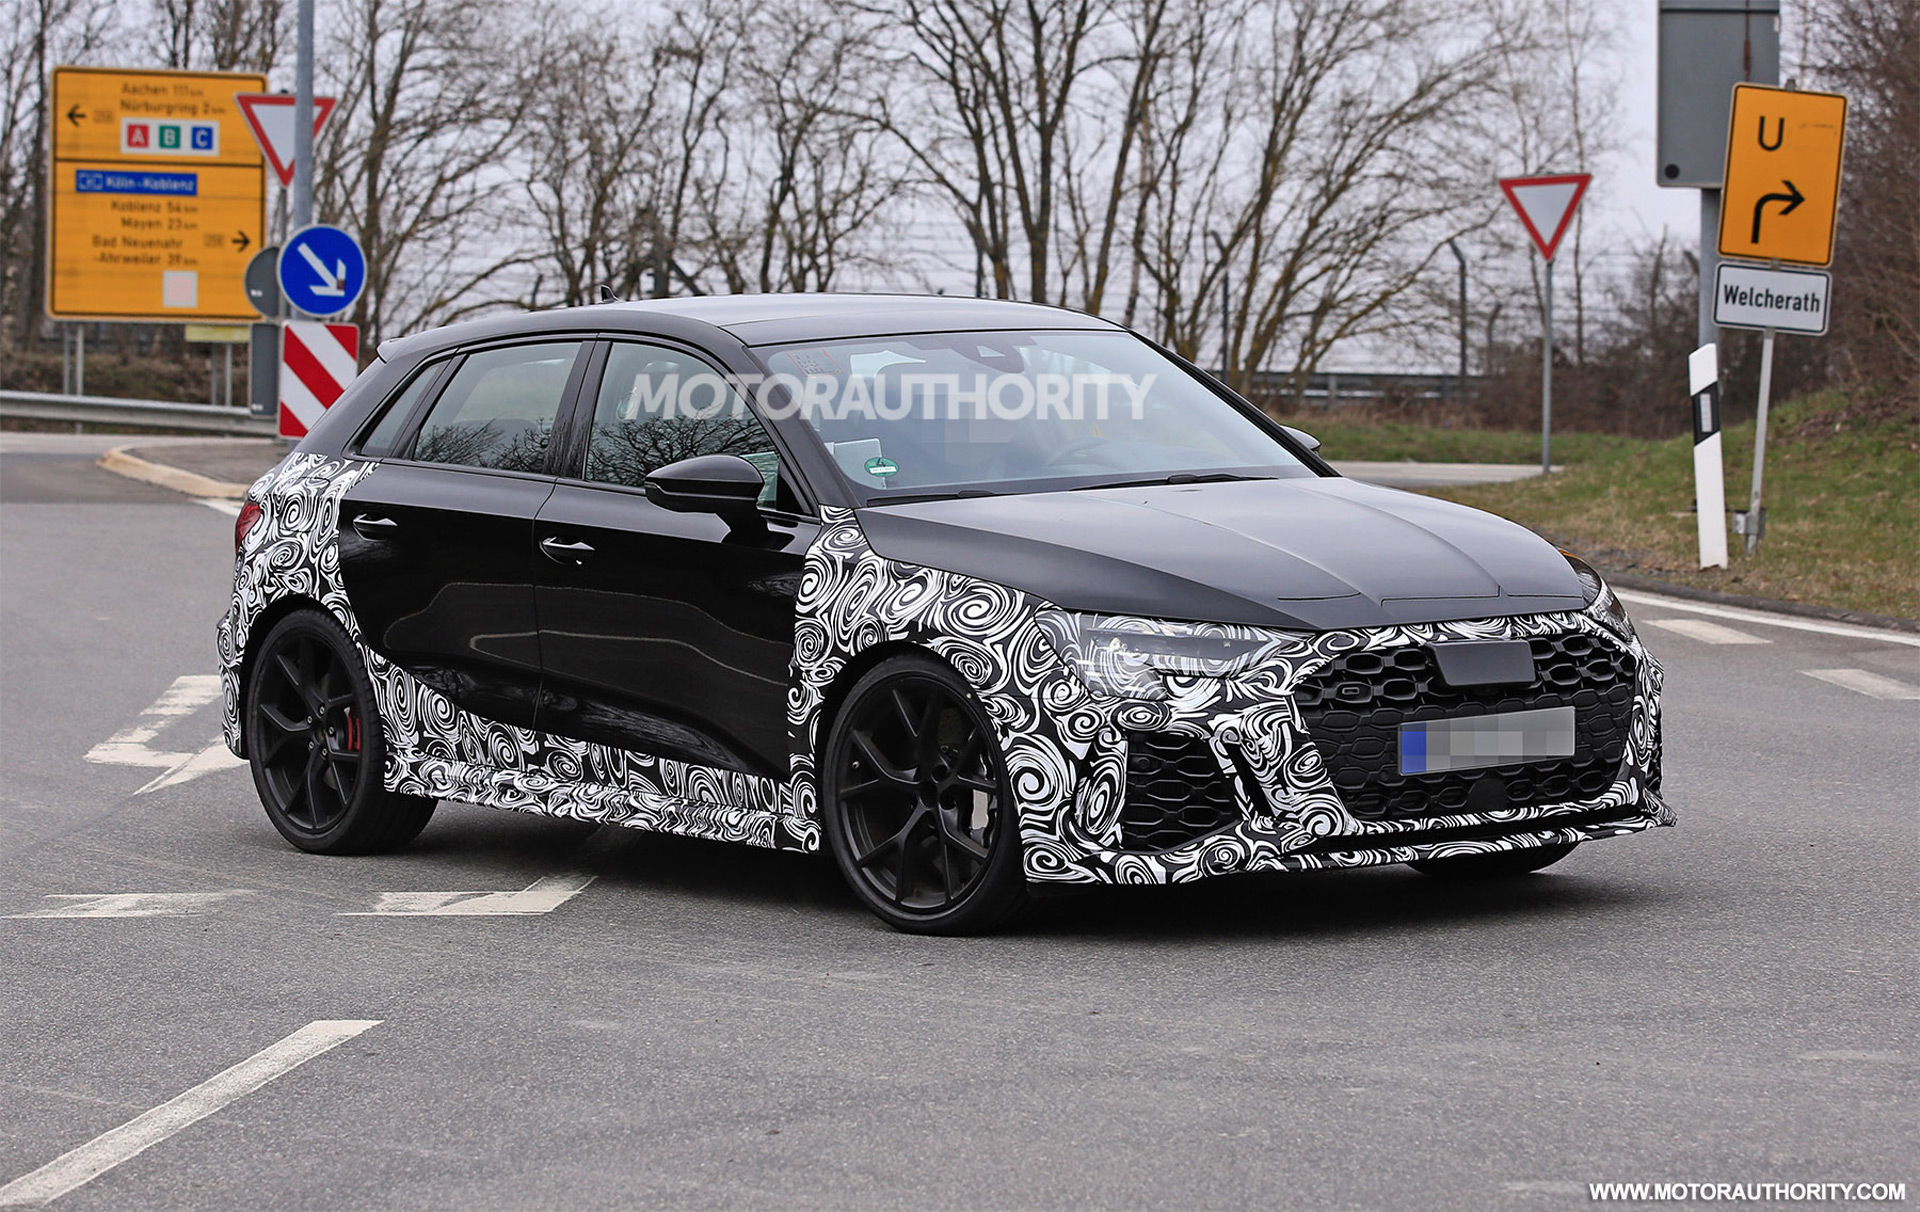 2022 Audi RS 3 Sportback spy shots: Hot hatch coming soon with 400-plus-hp